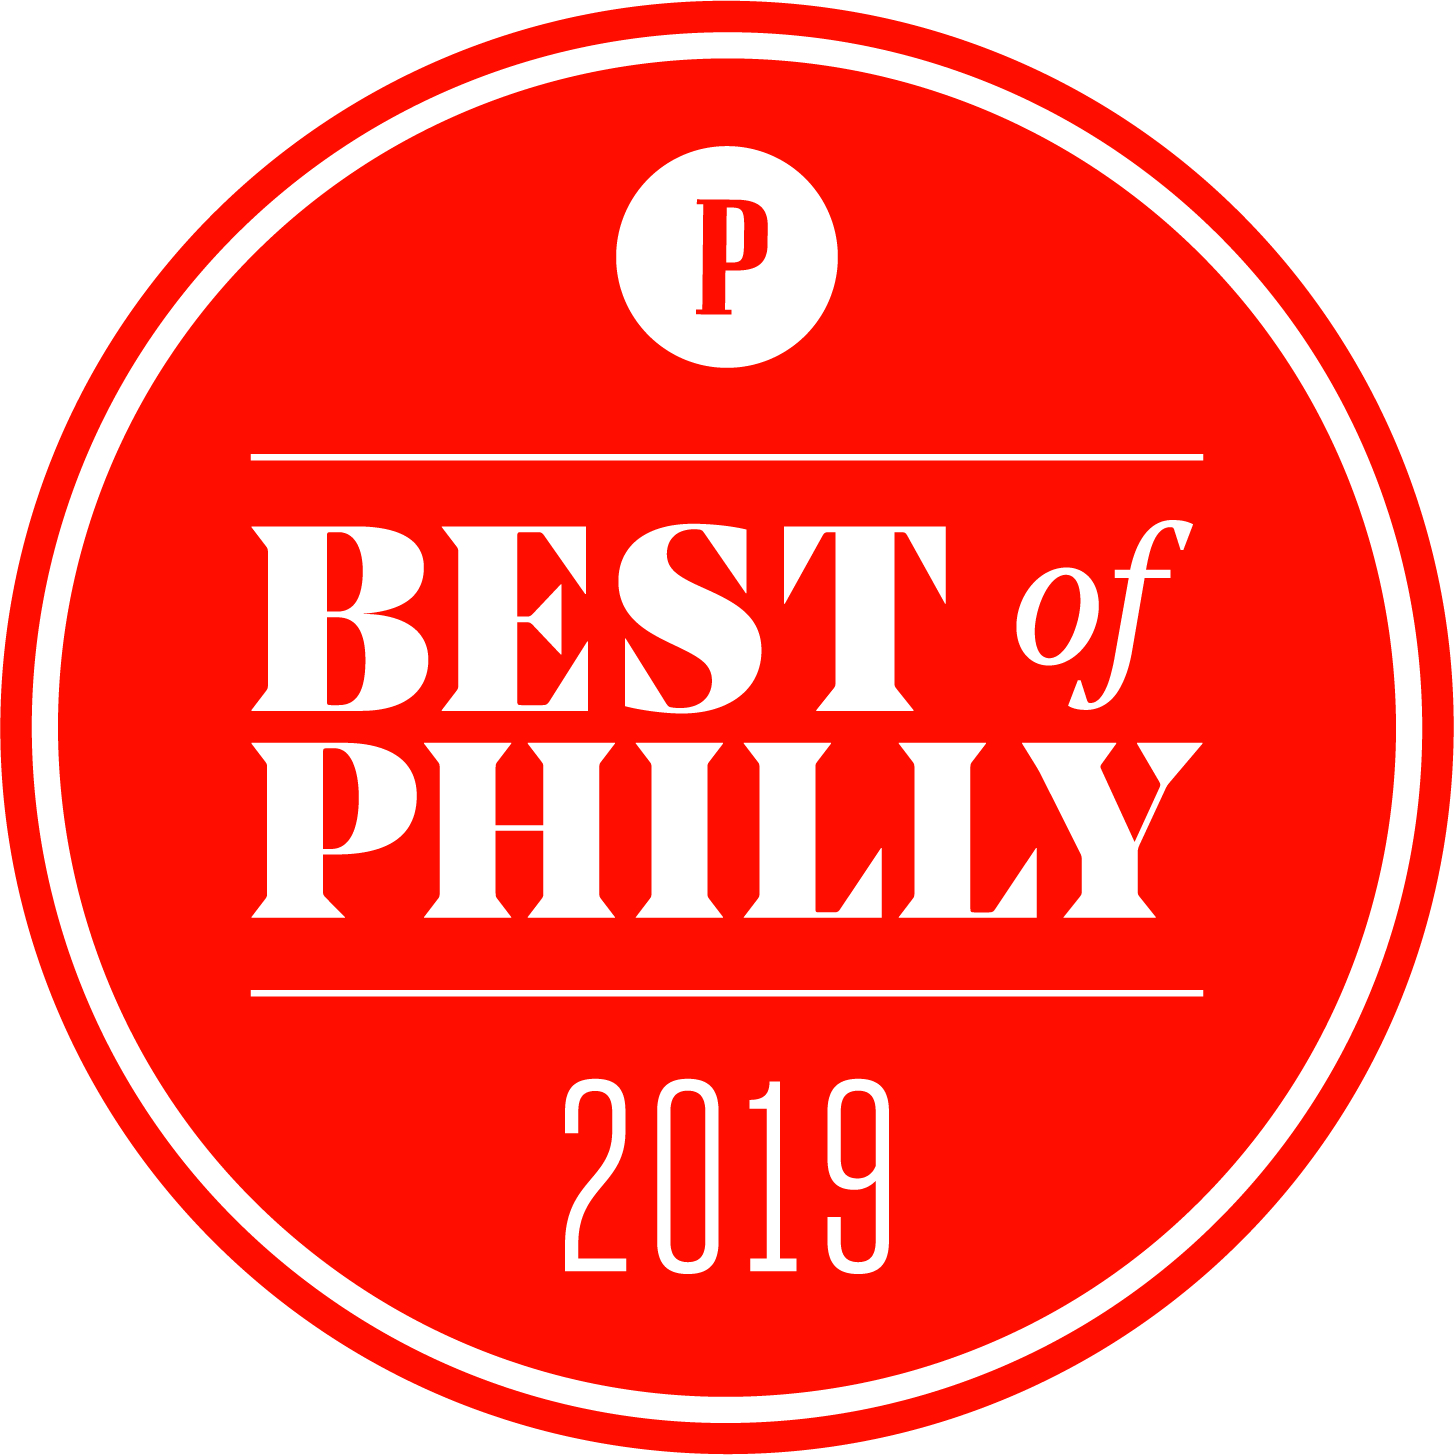 Best of Philly 2019